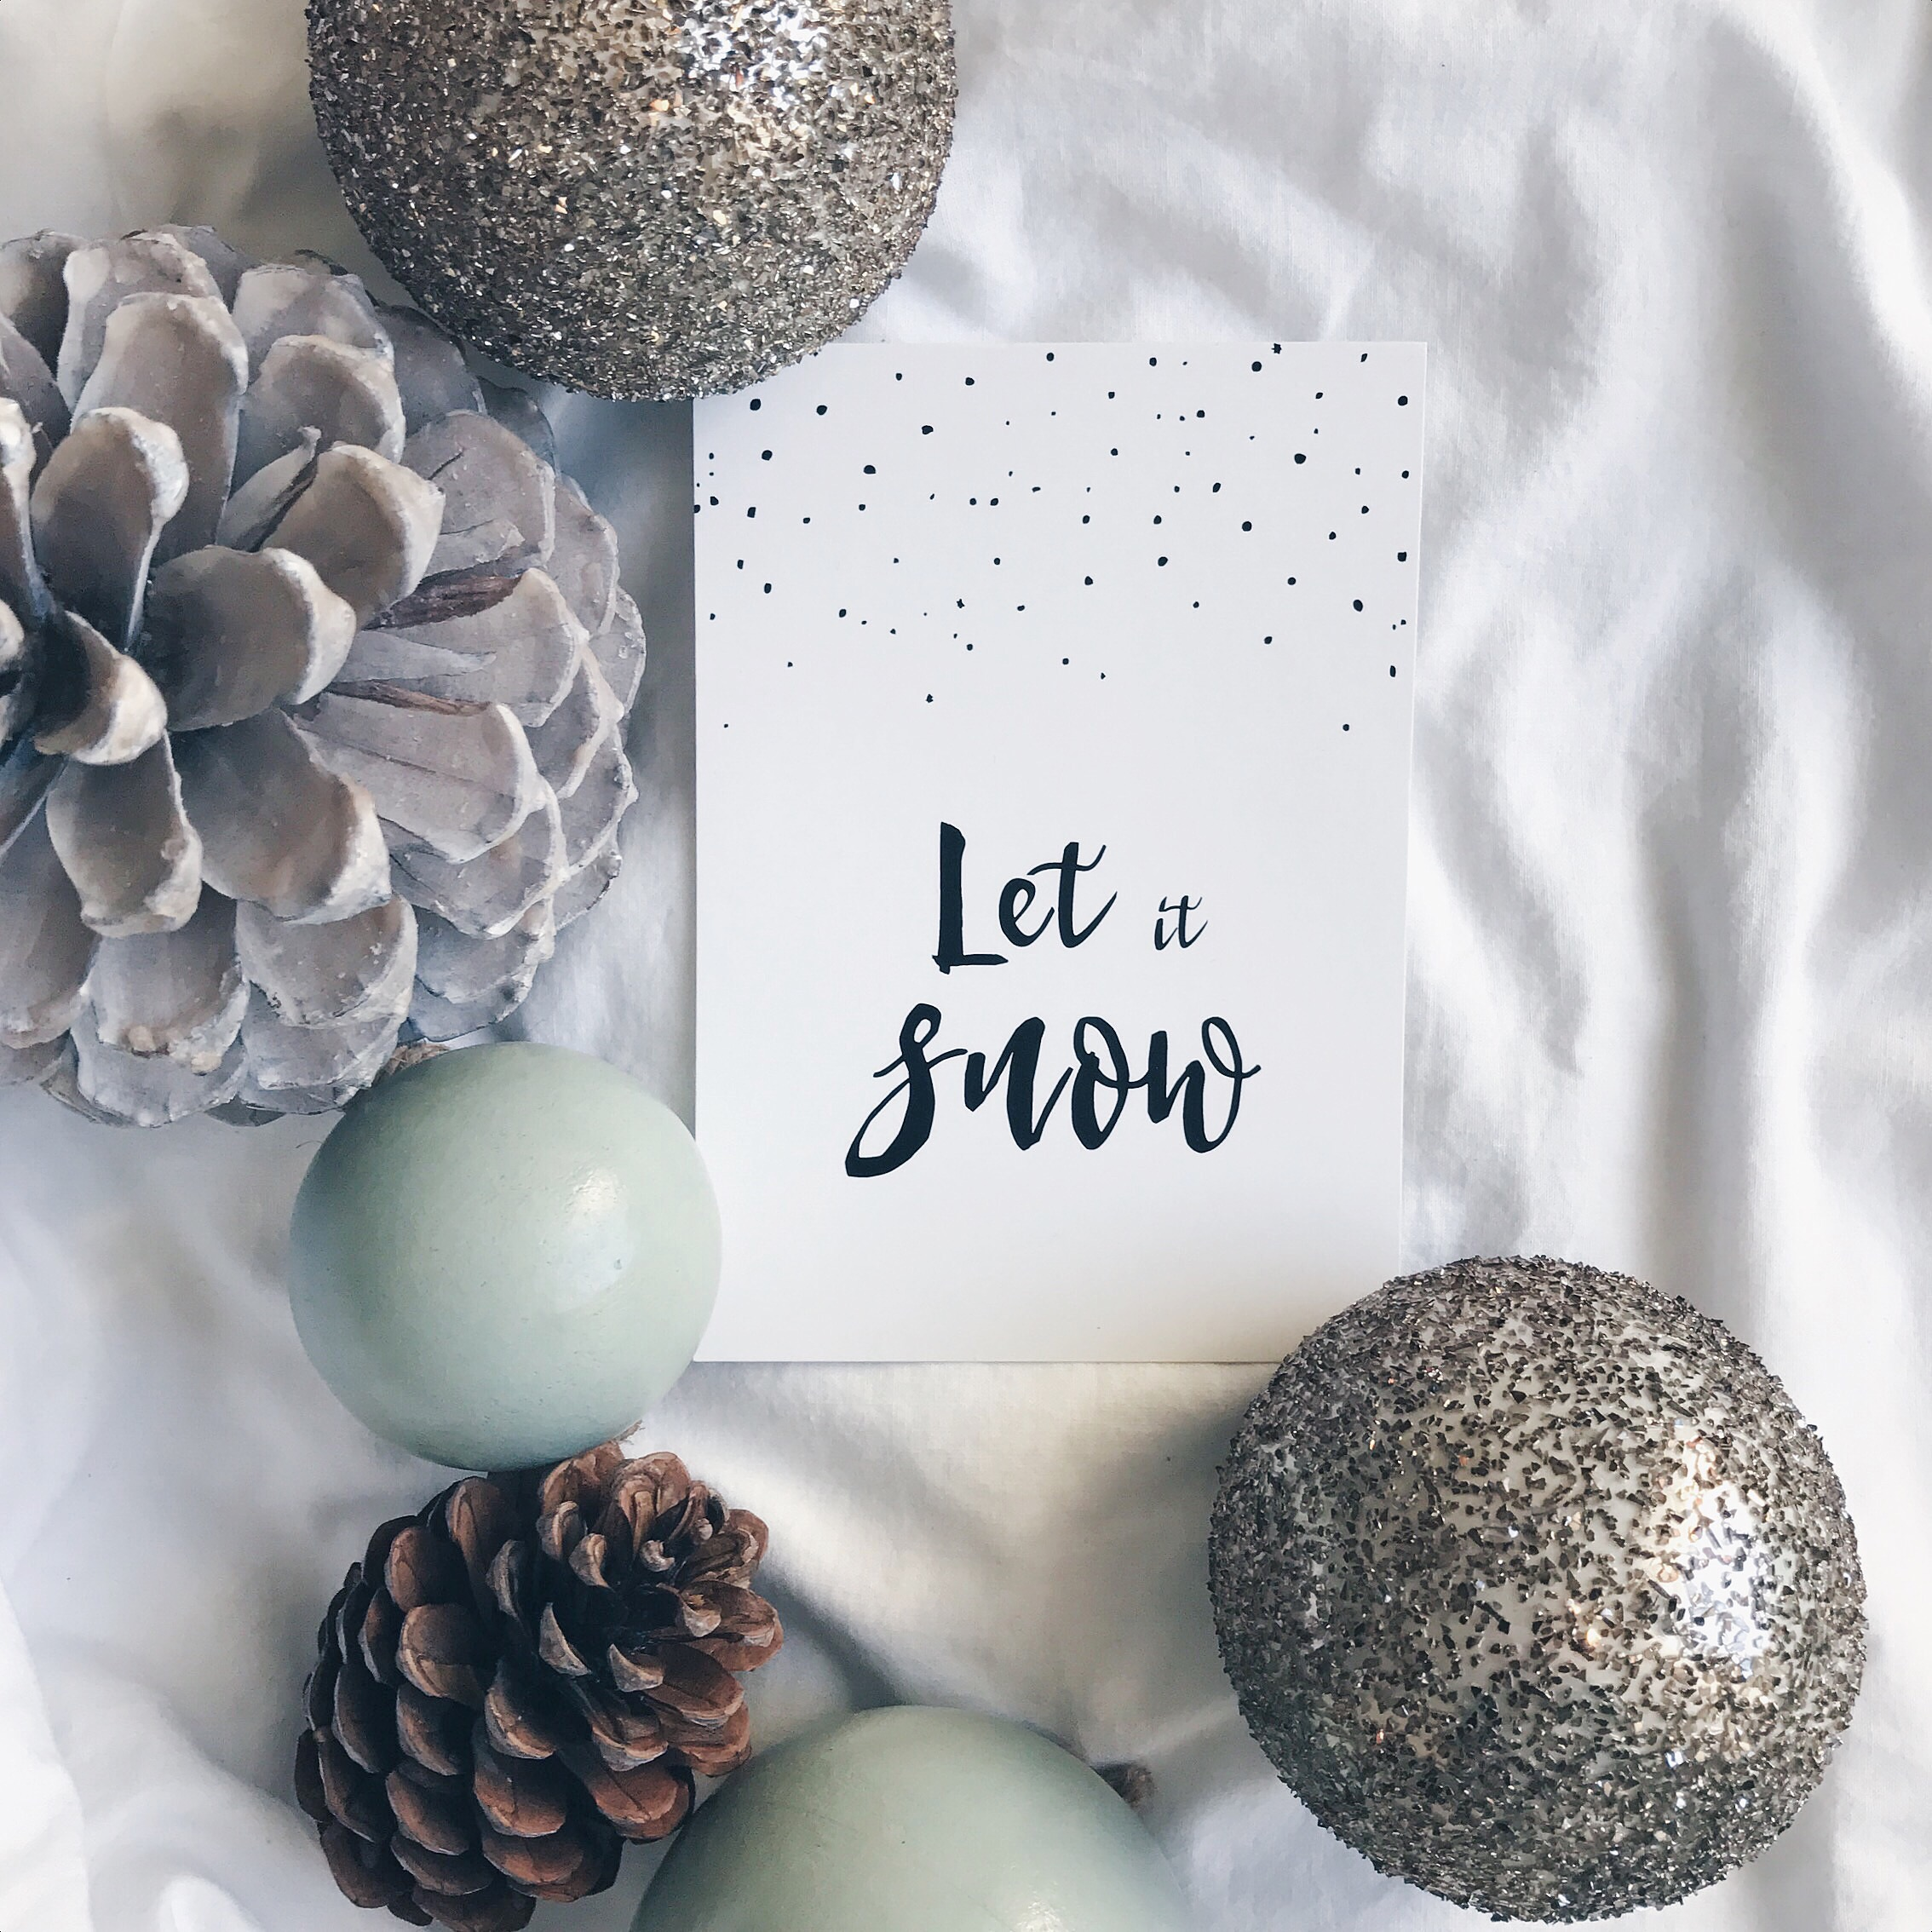 Let it snow Projekt Stil Postkarte Poster Print Adventskalender